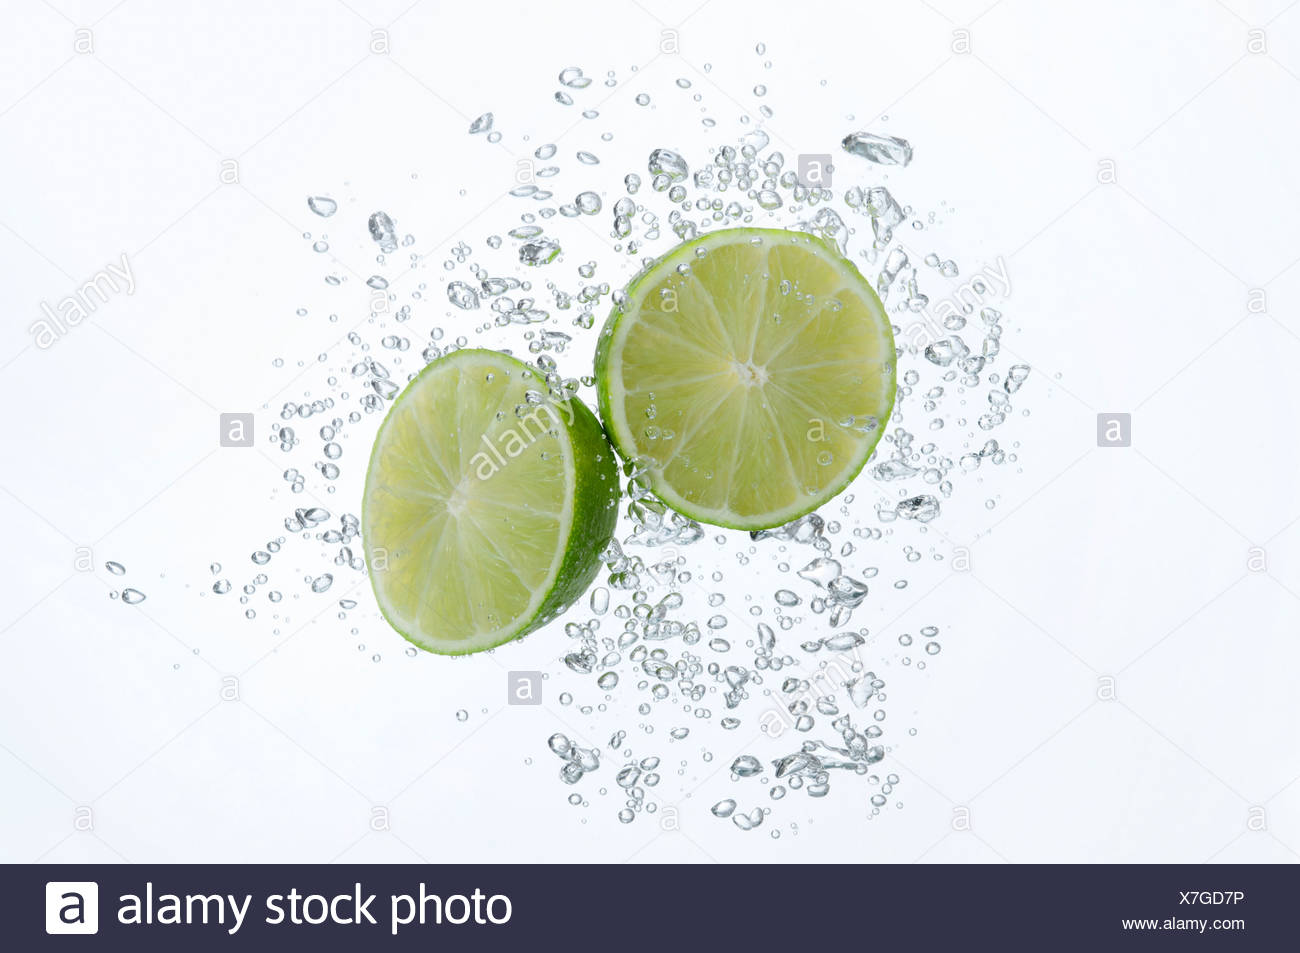 Lime halves submerged in sparkling water Stock Photo